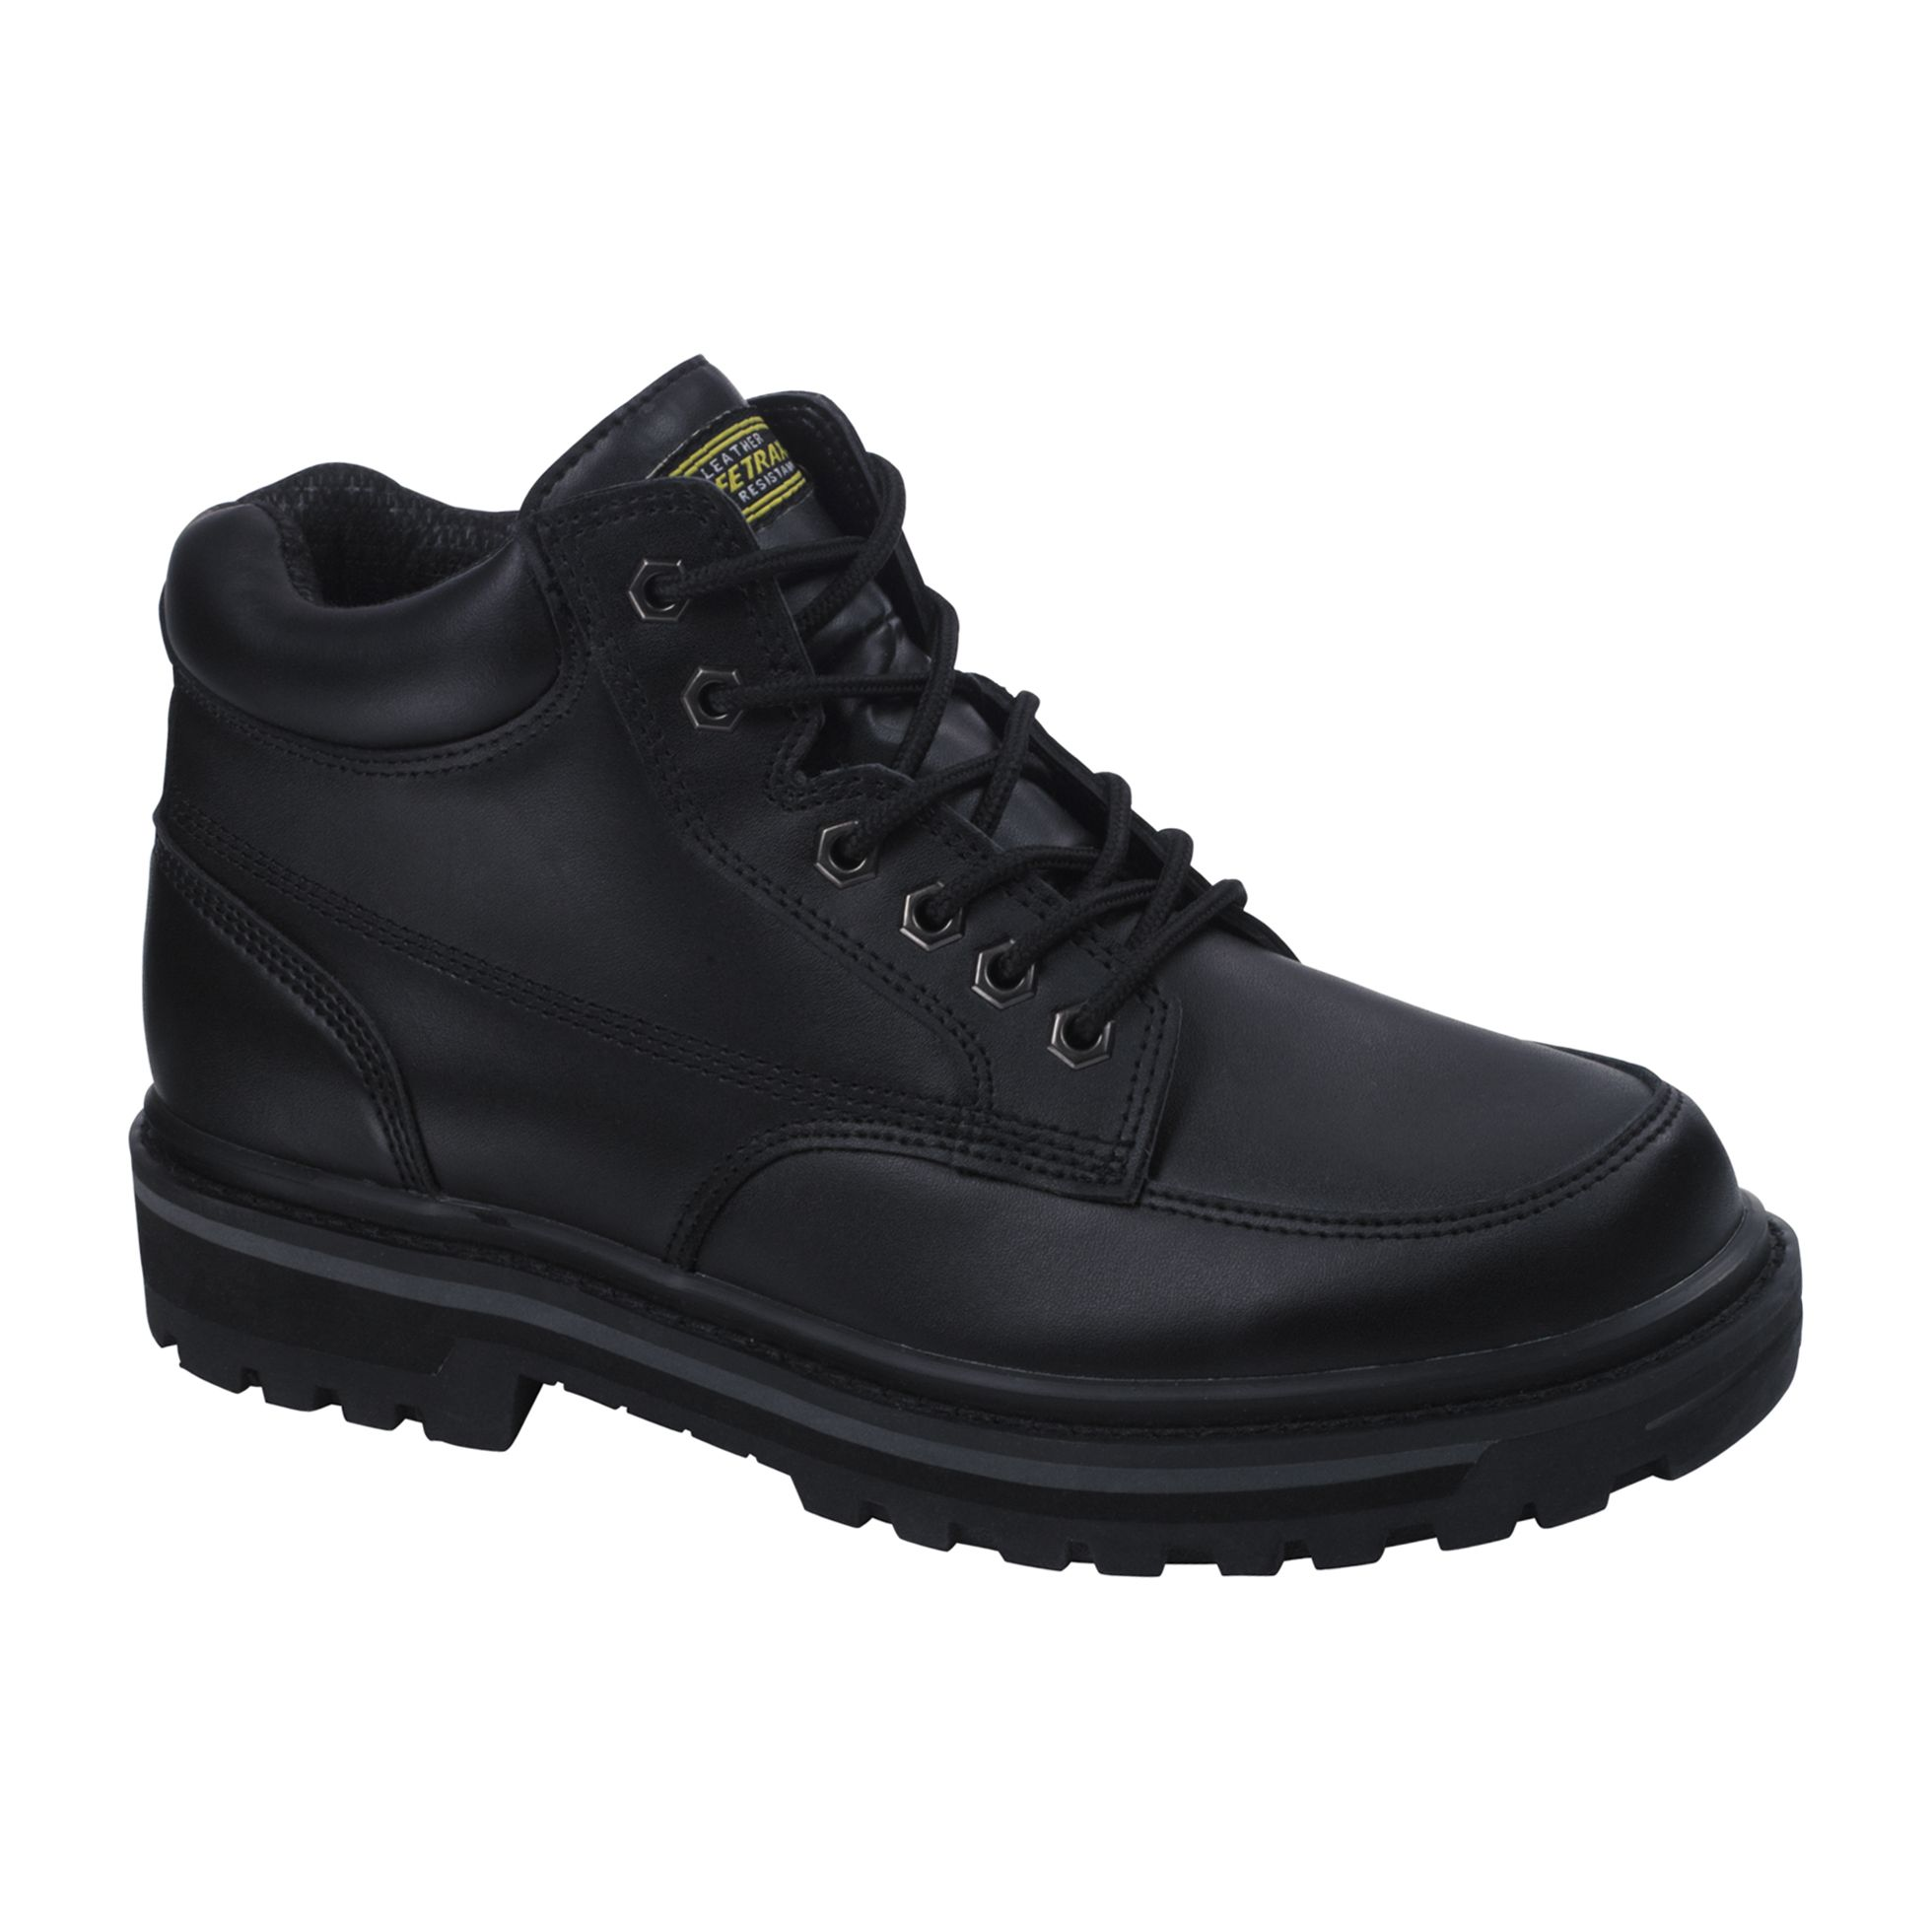 Men's Karr Non-Skid Boot - Black